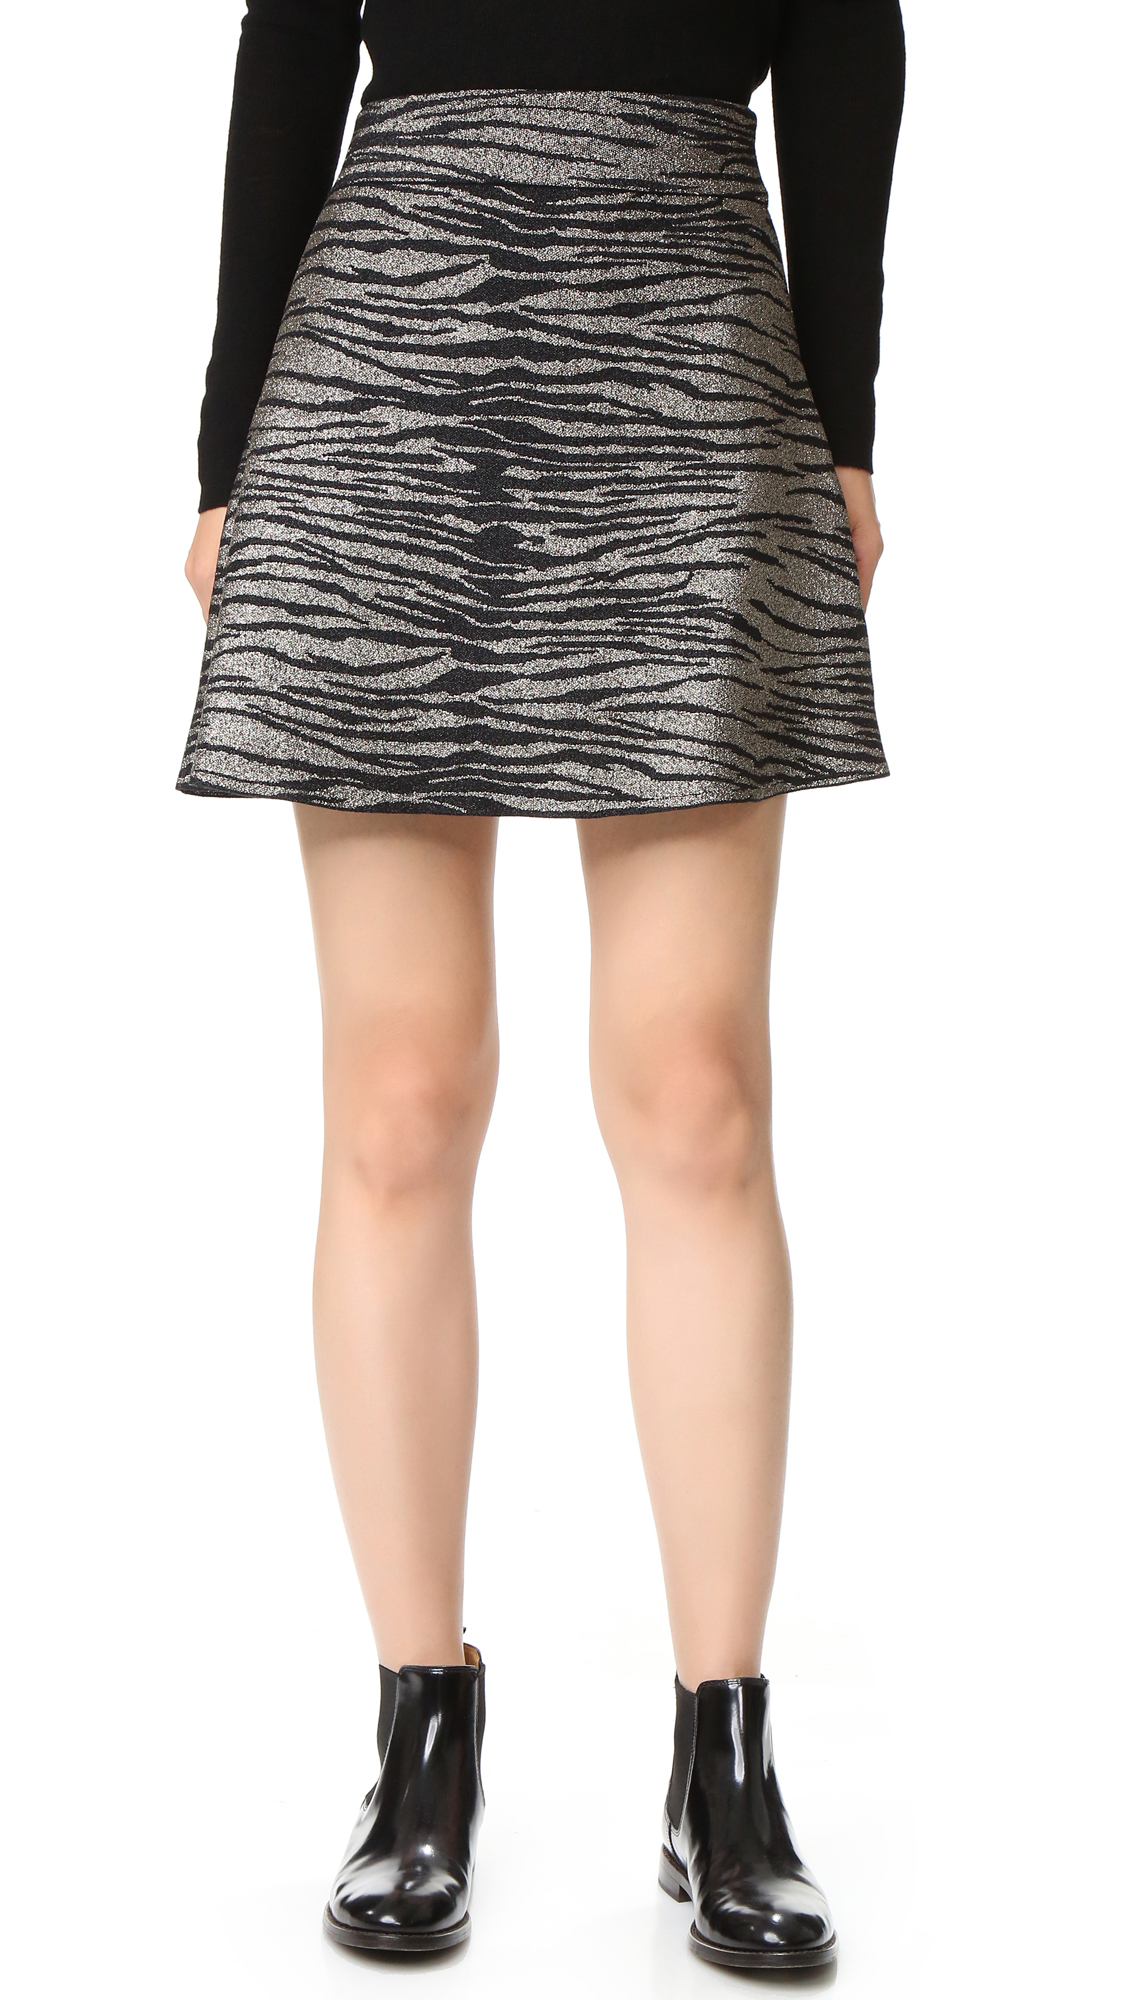 A.L.C. Alonso Skirt - Gold/Black at Shopbop